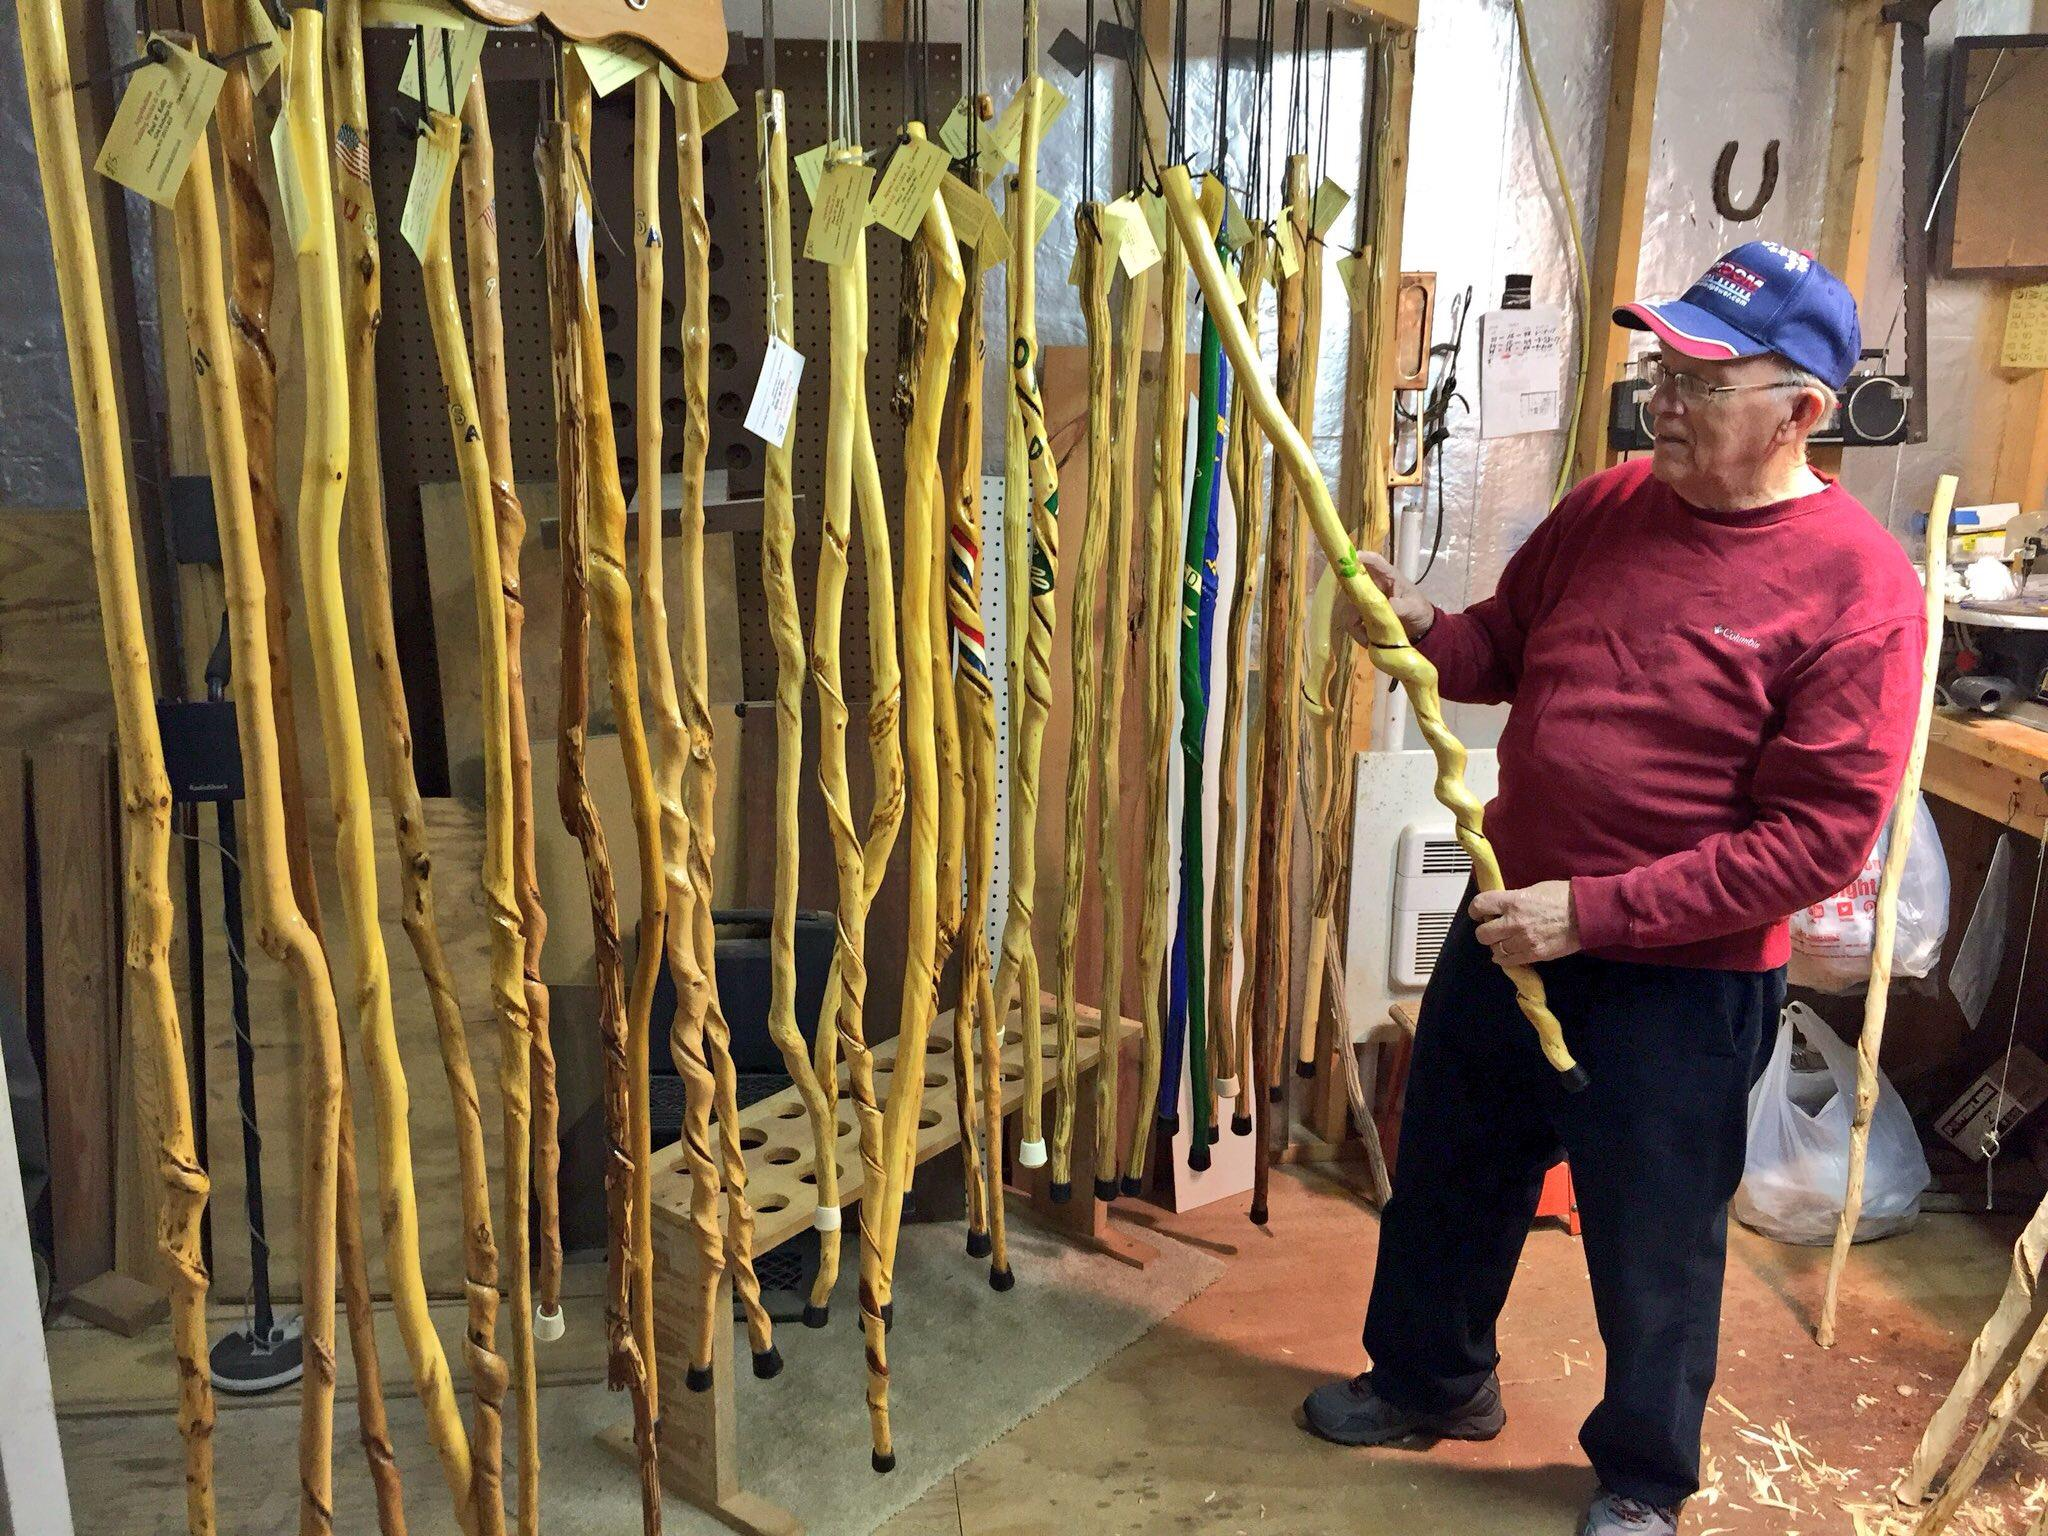 Kelly has made over 500 walking sticks and canes. (WCHS/WVAH)